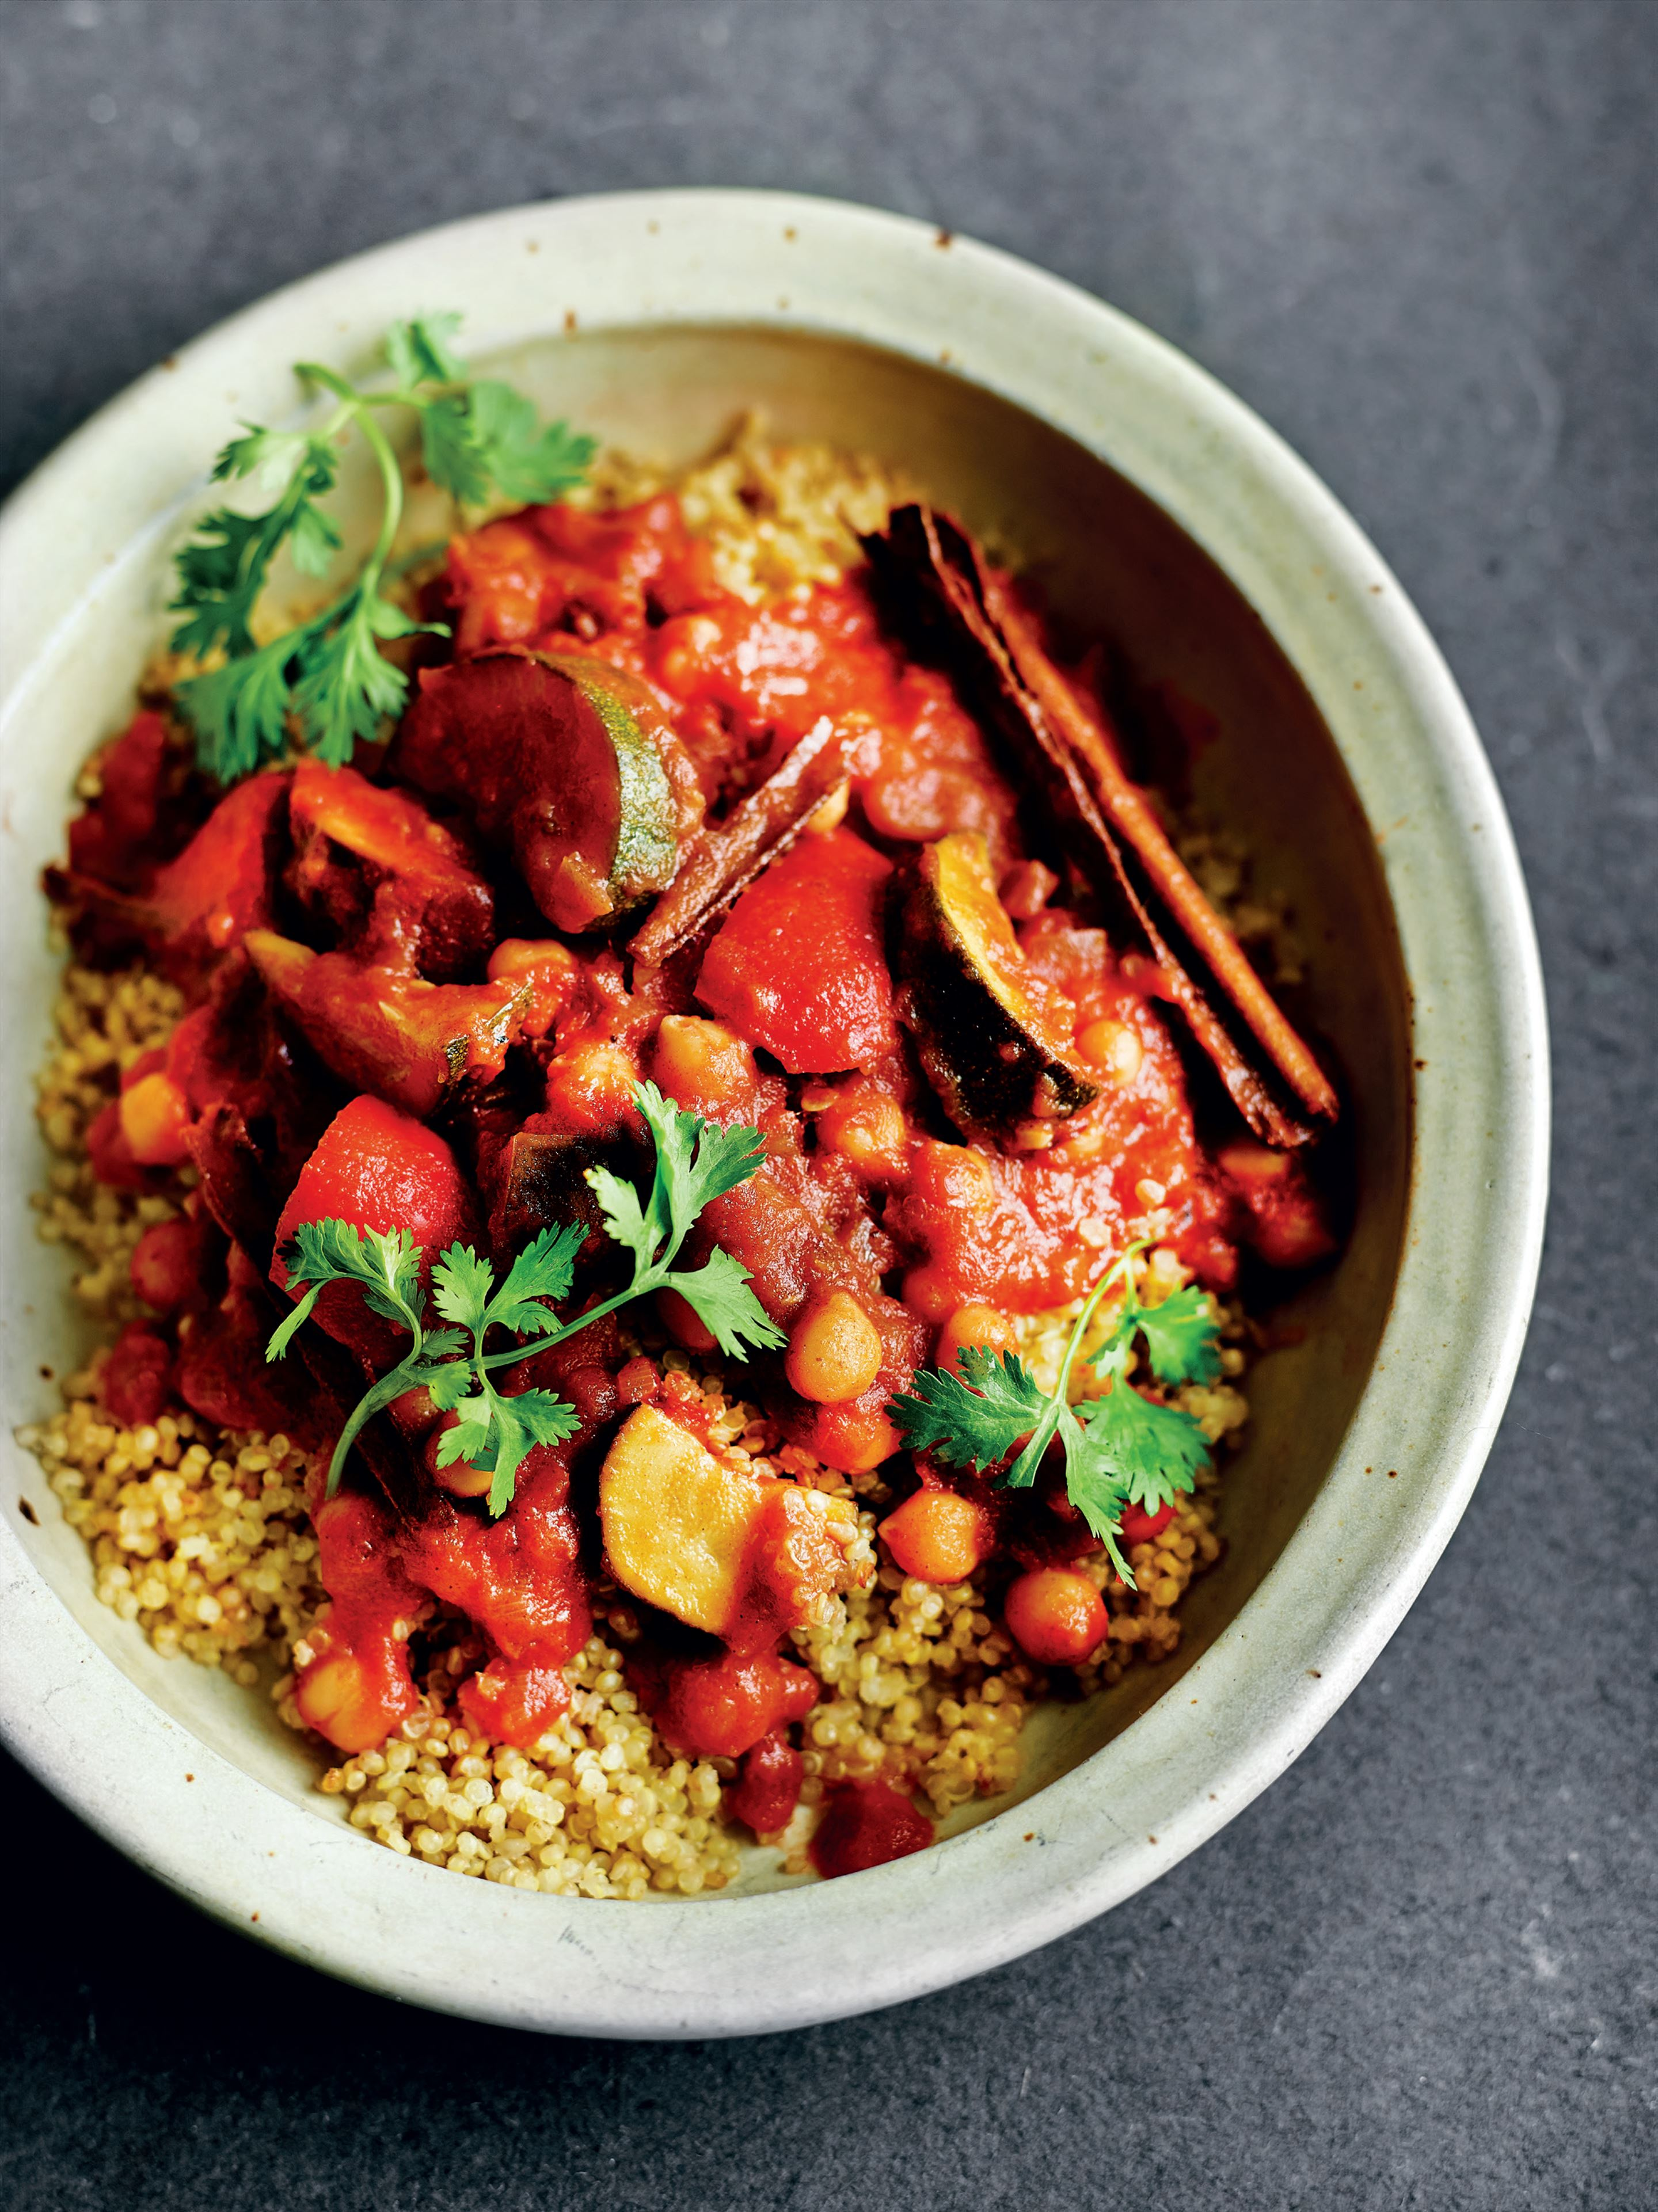 One-pot Moroccan vegetable tagine